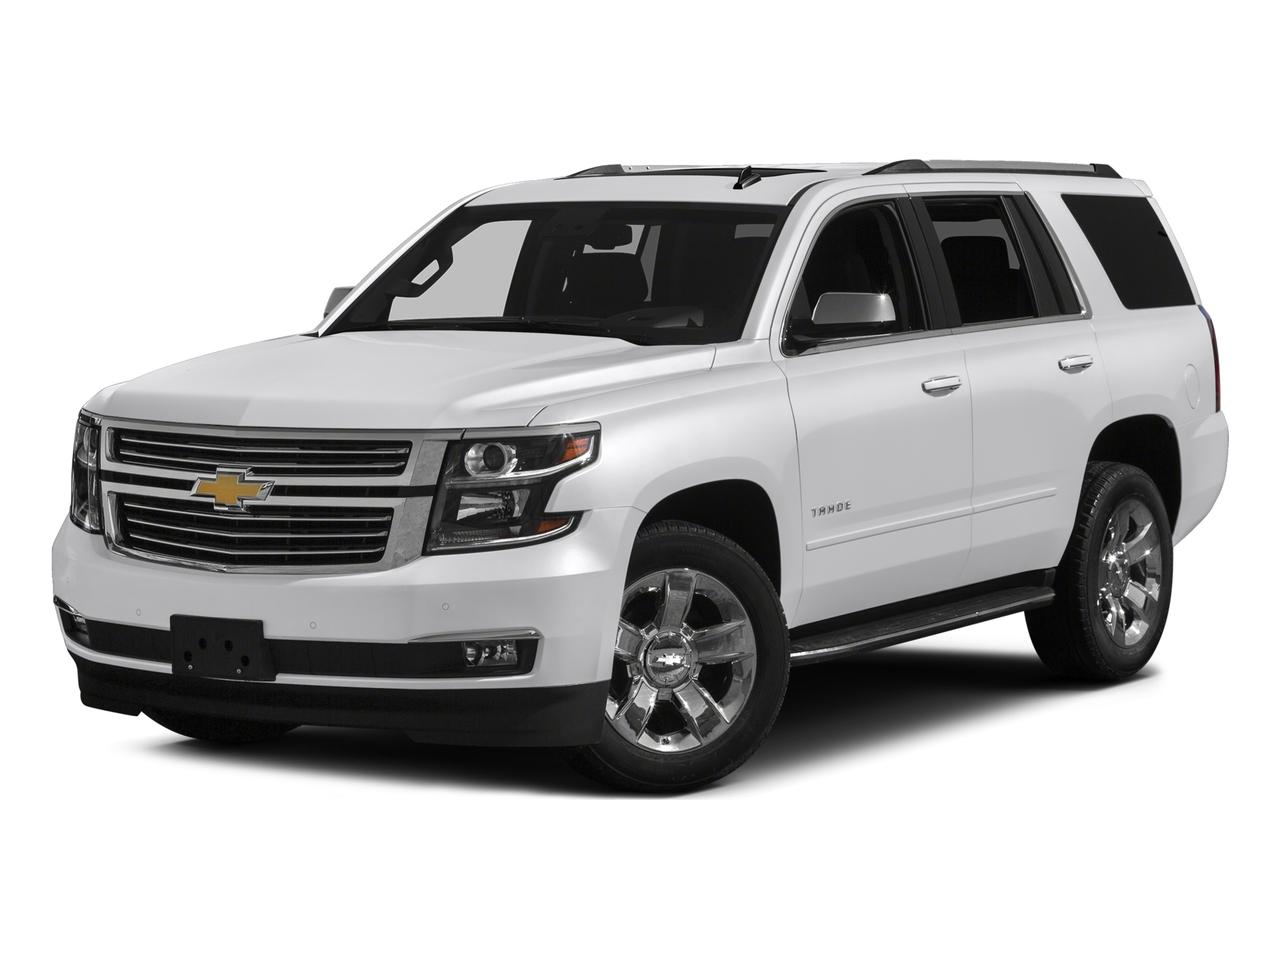 2017 Chevrolet Tahoe Vehicle Photo in Tulsa, OK 74133